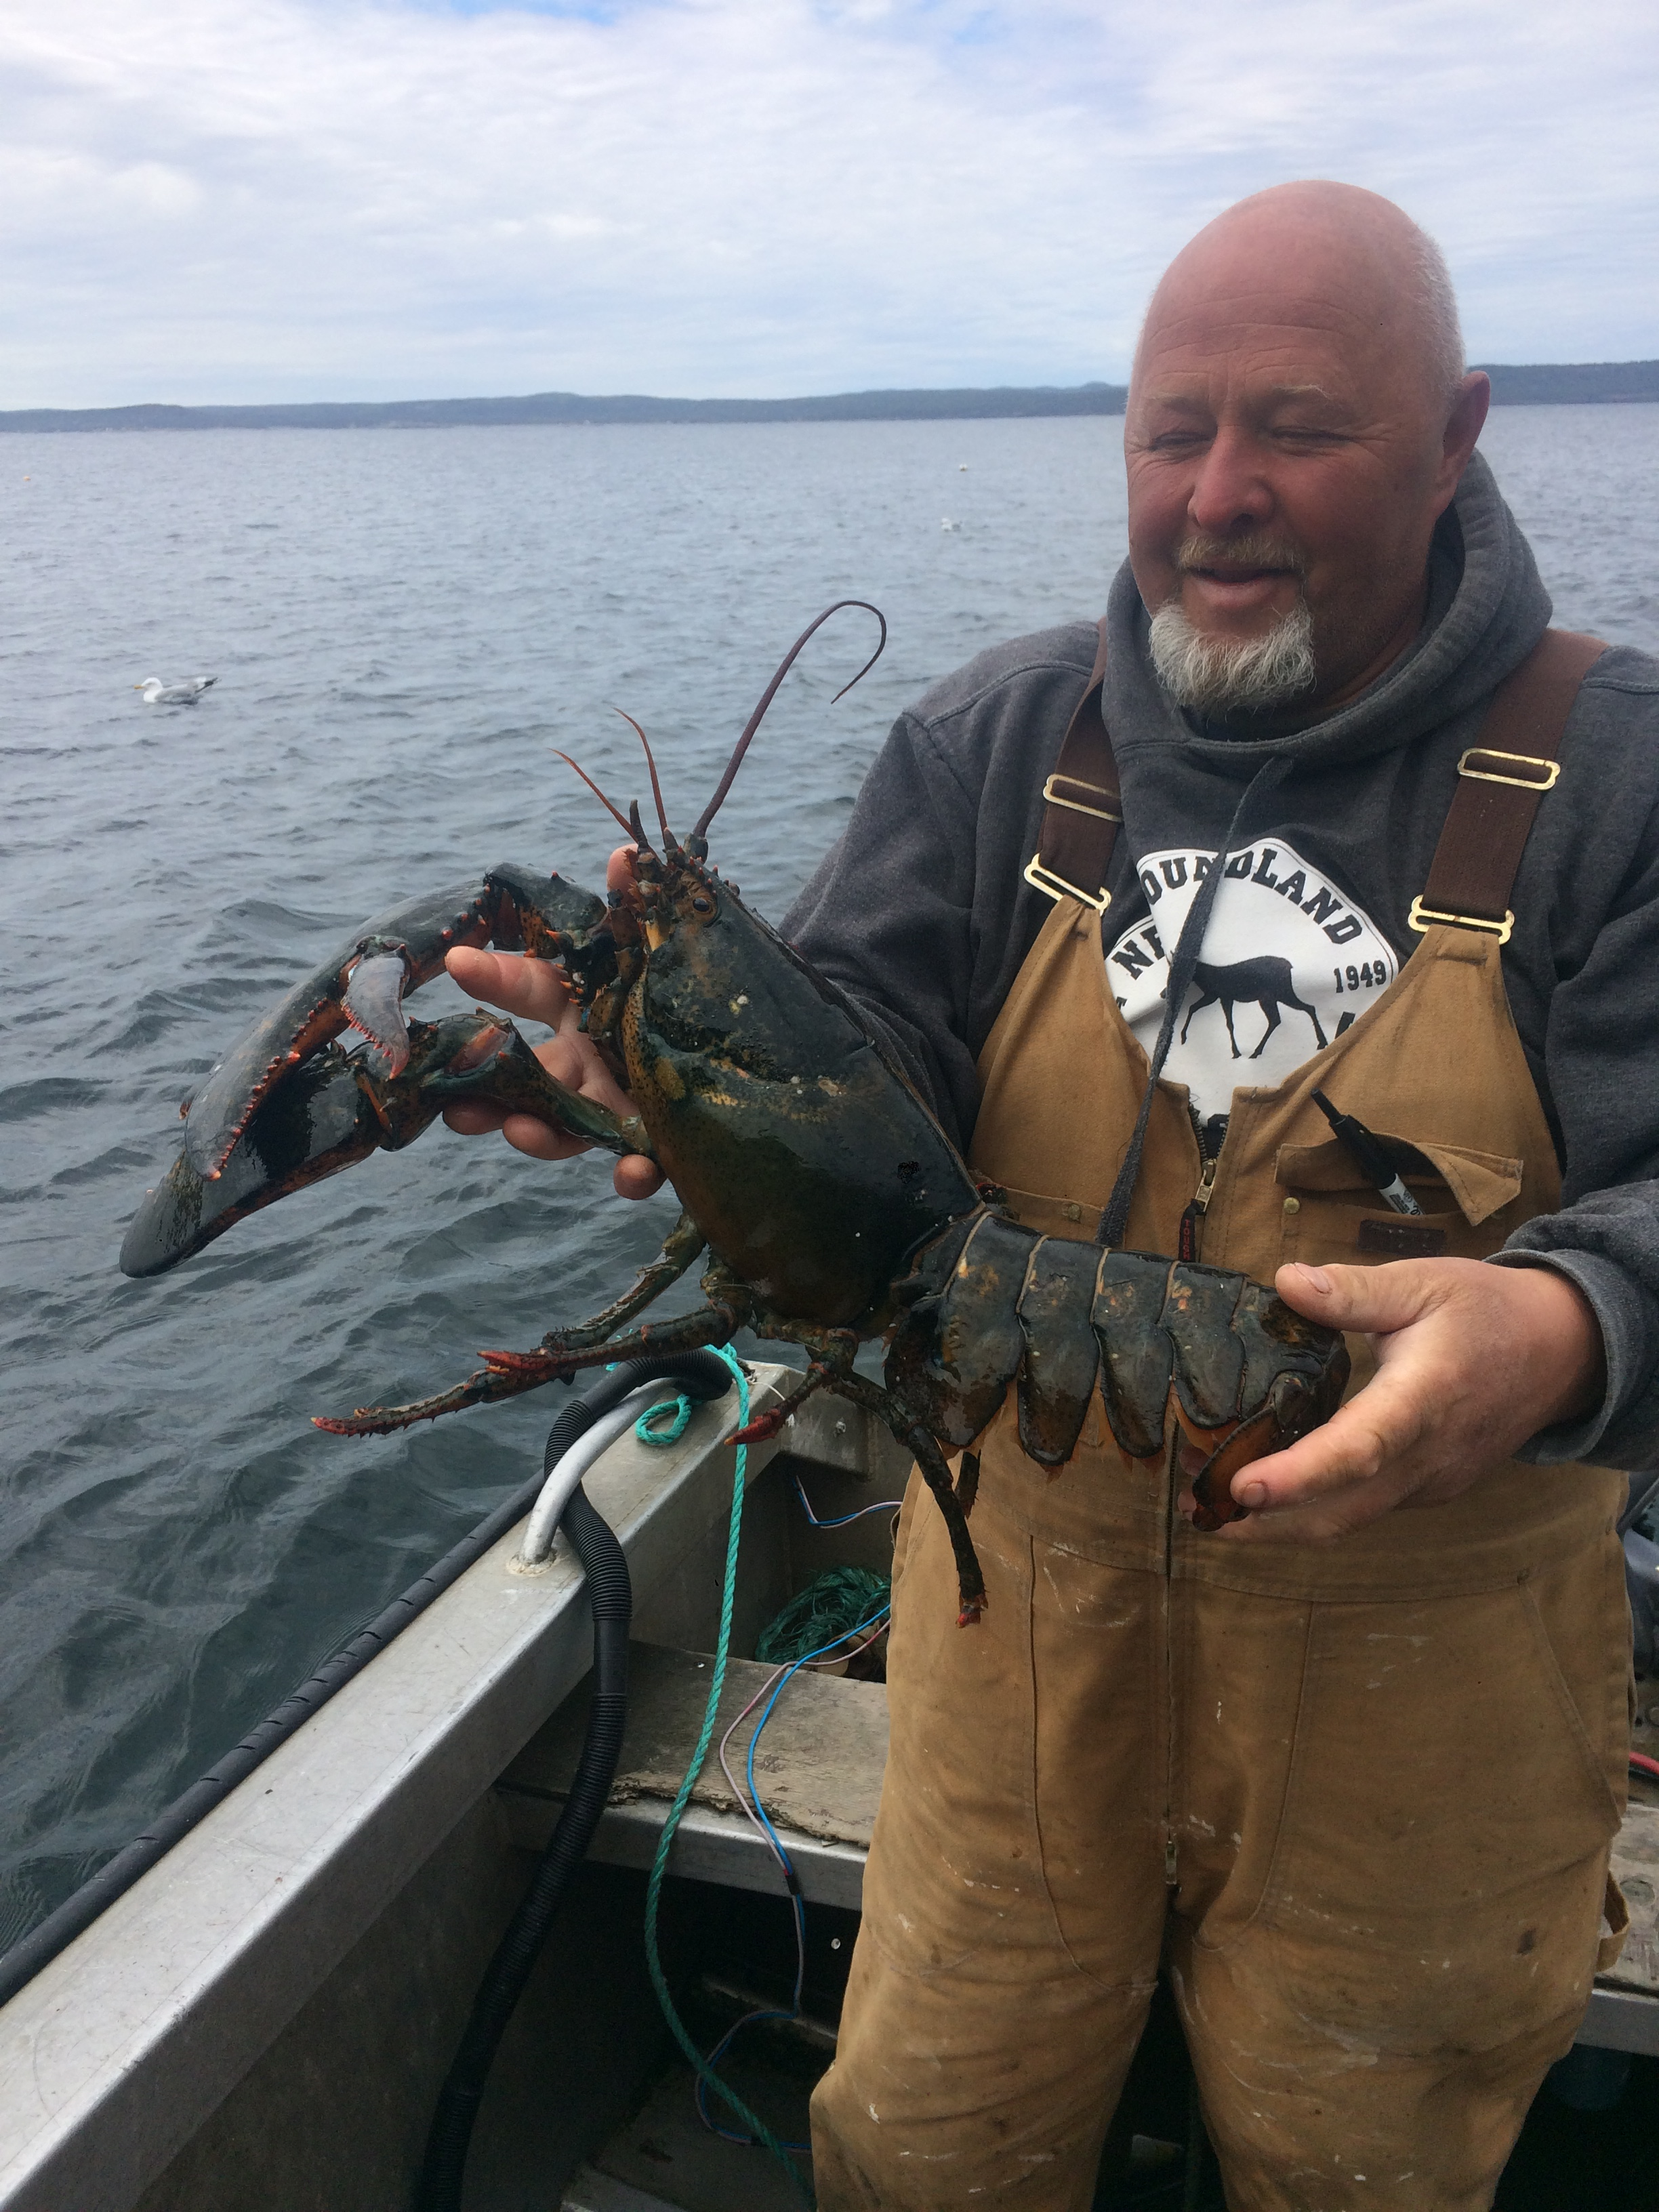 Jerry holding a lobster on his boat